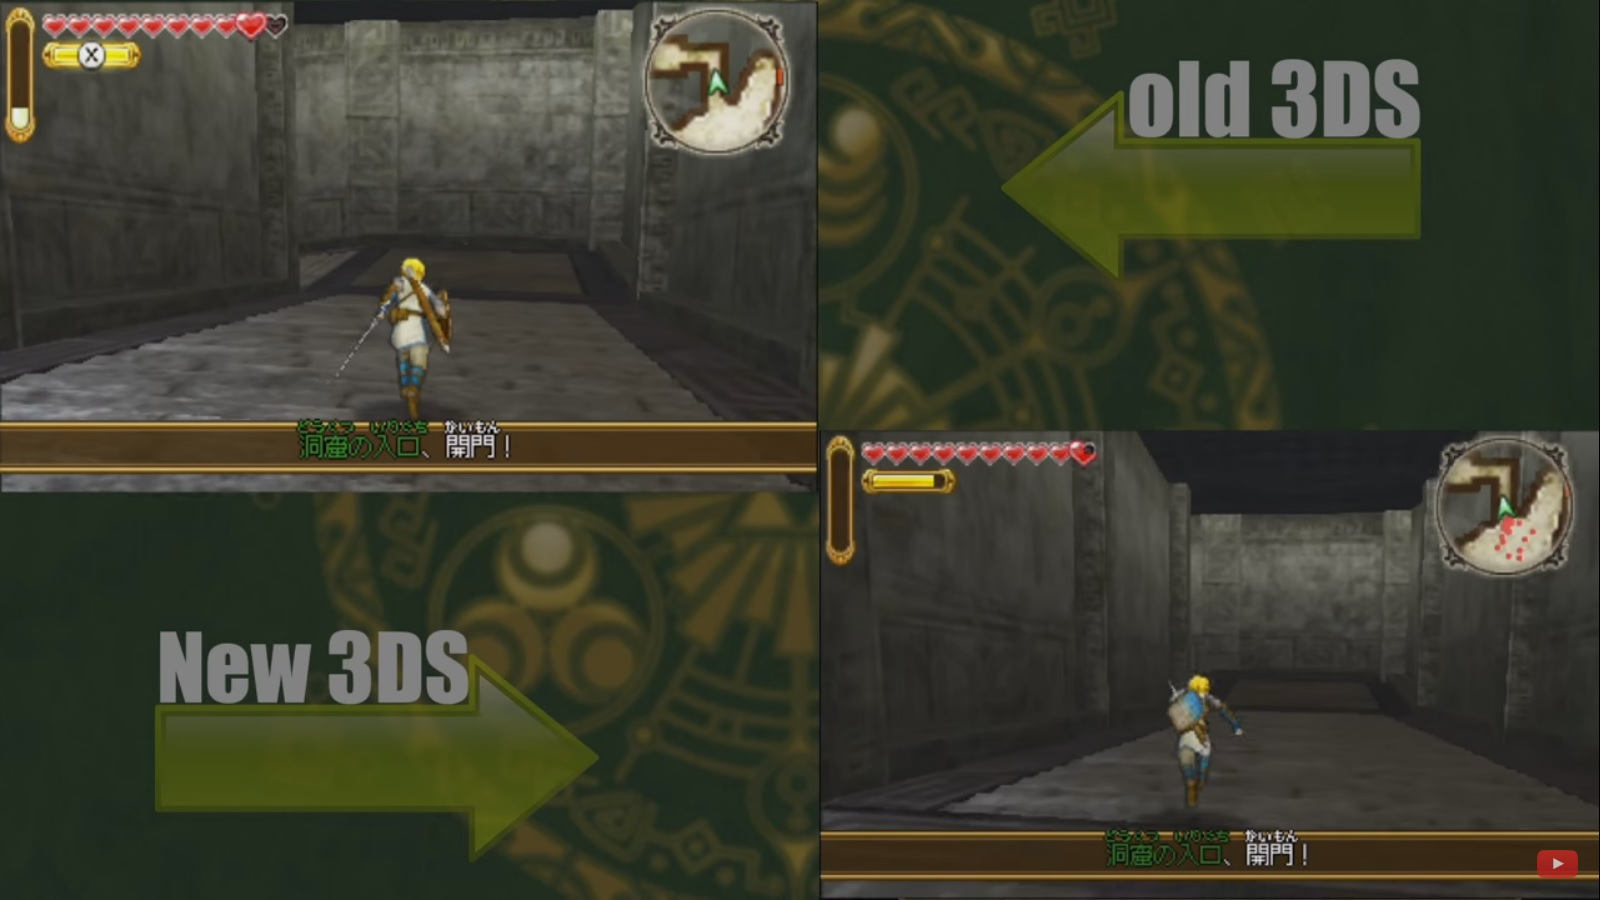 Another Hyrule Warriors Legends New 3ds Vs Original 3ds Comparison Nintendo Everything